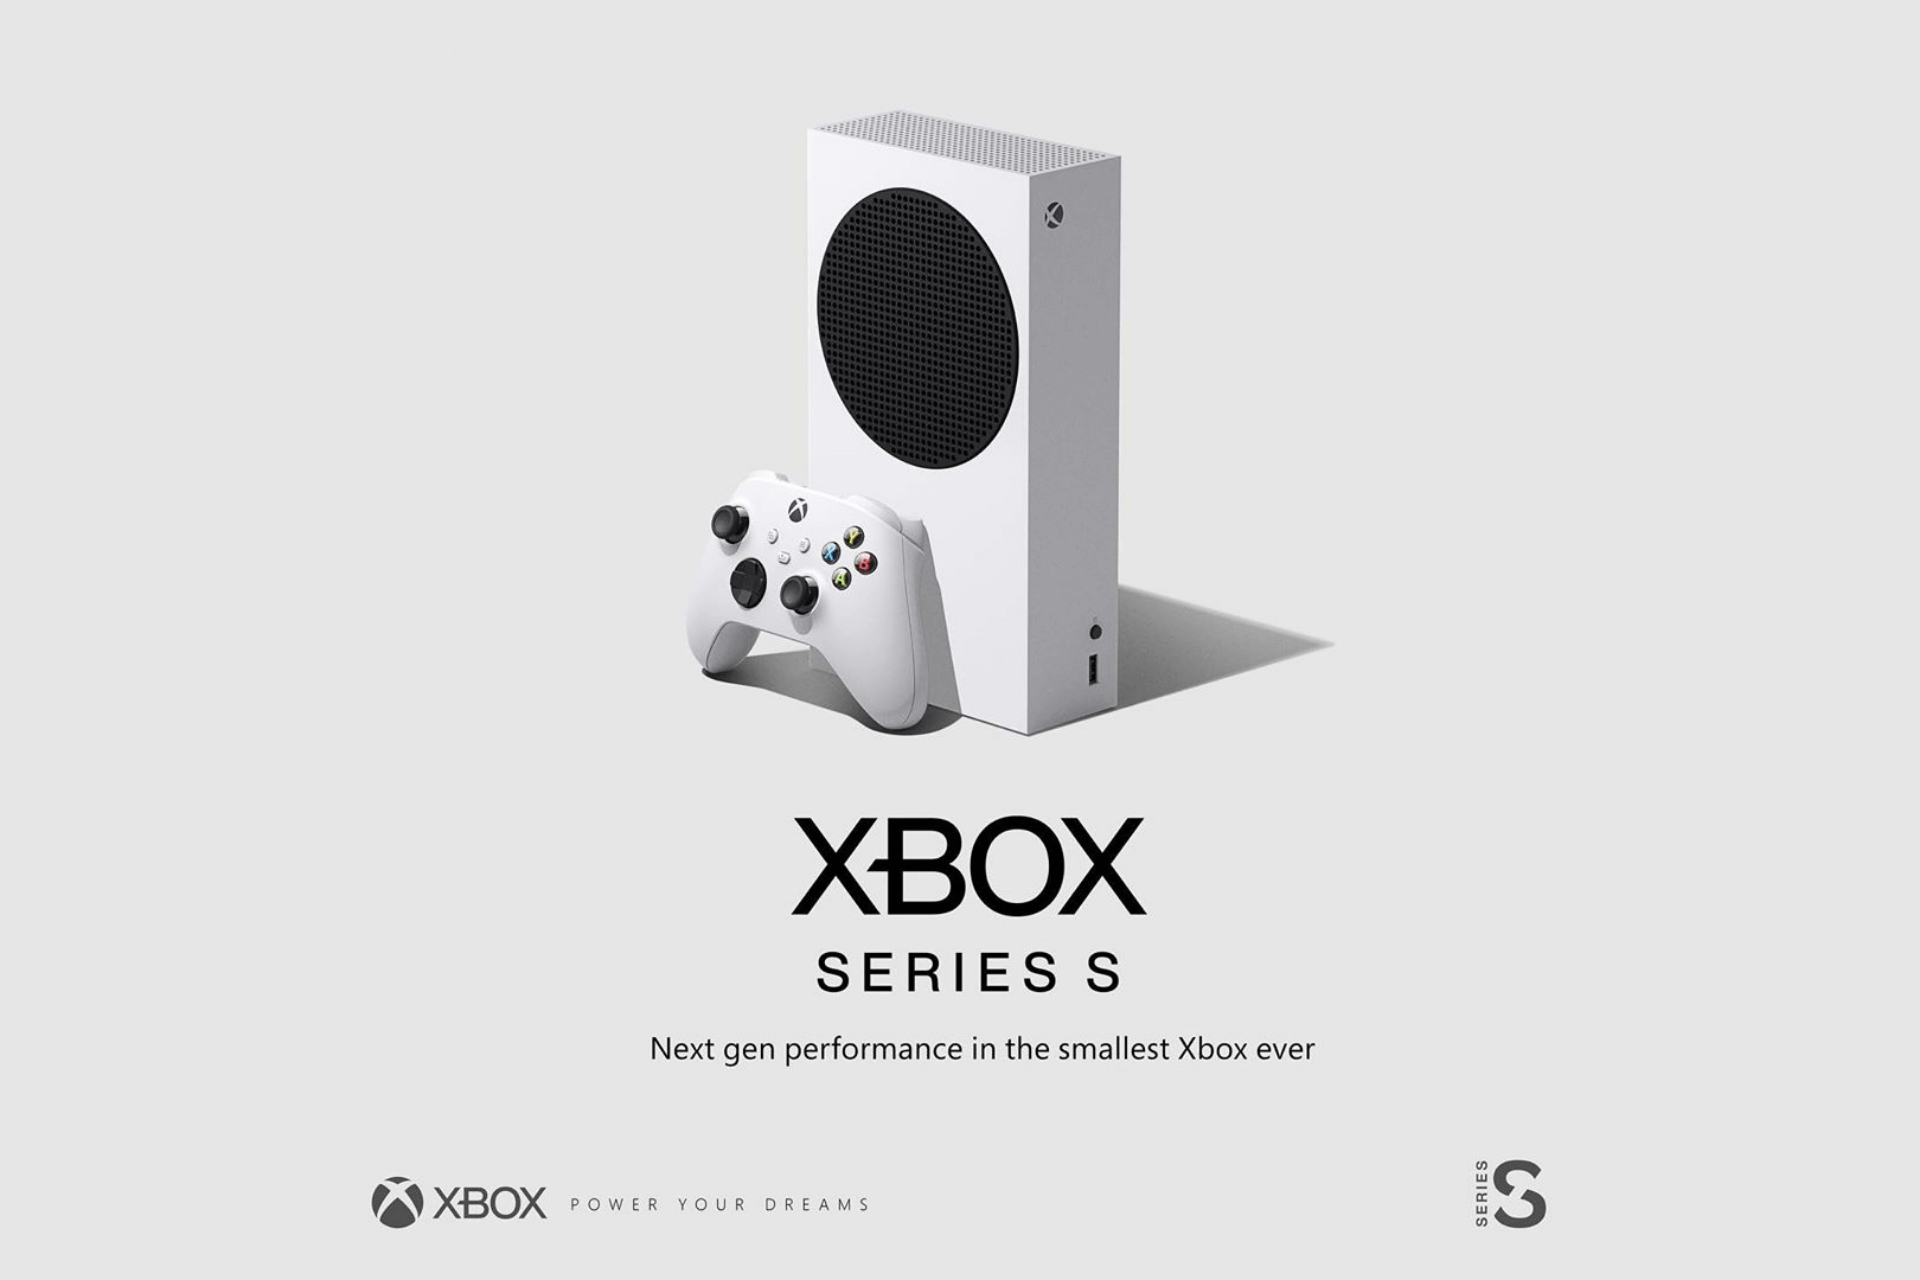 Xbox Announced Smallest Xbox Series S Console to Deliver Next-Gen Performance at $299